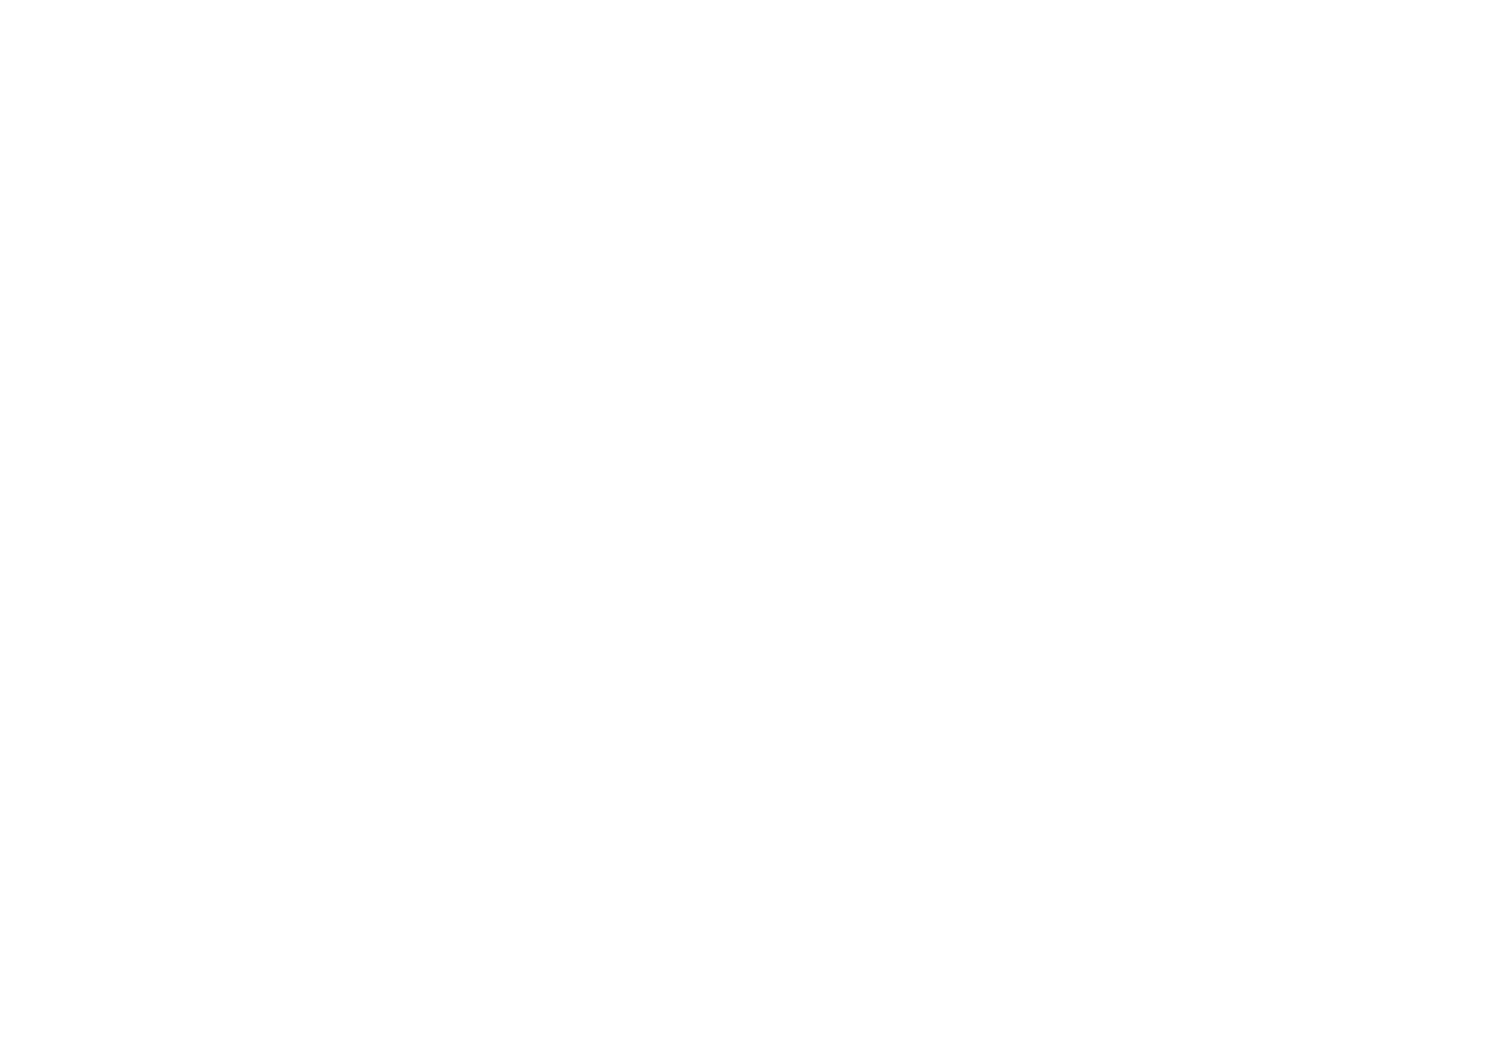 Simon Eisenbach Productions